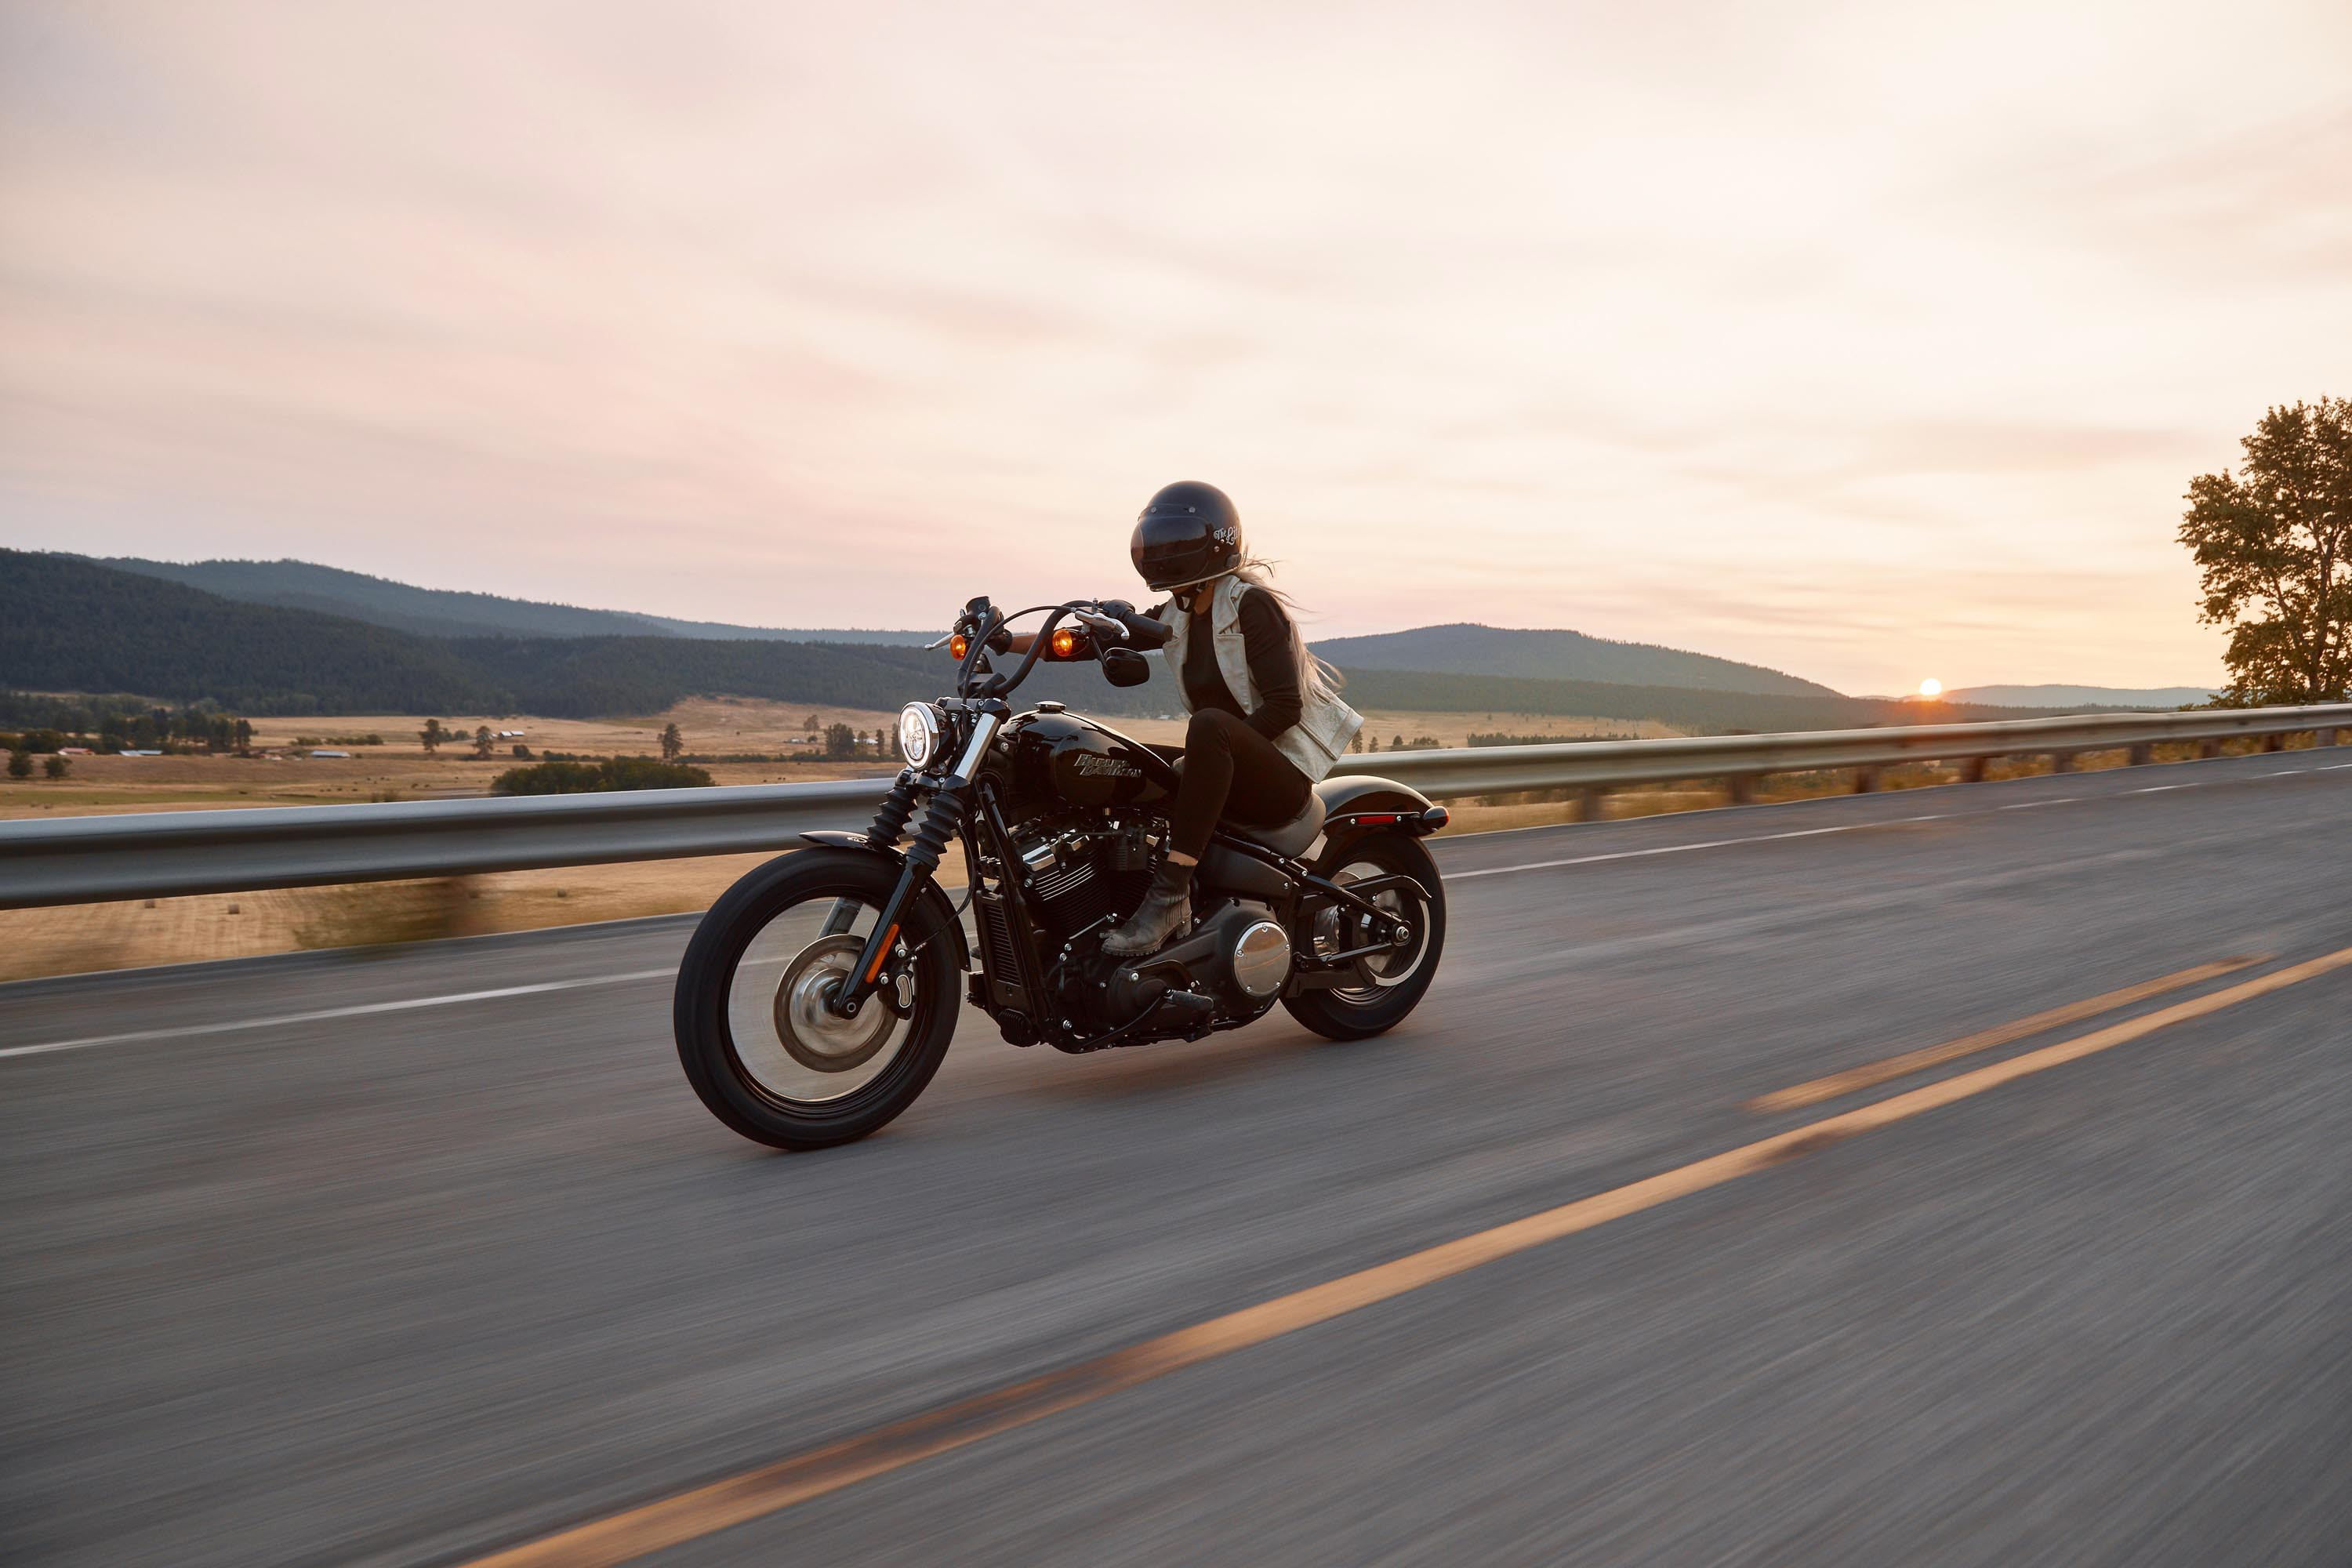 U.S. Motorcycle Sales Are Booming – Here's Why